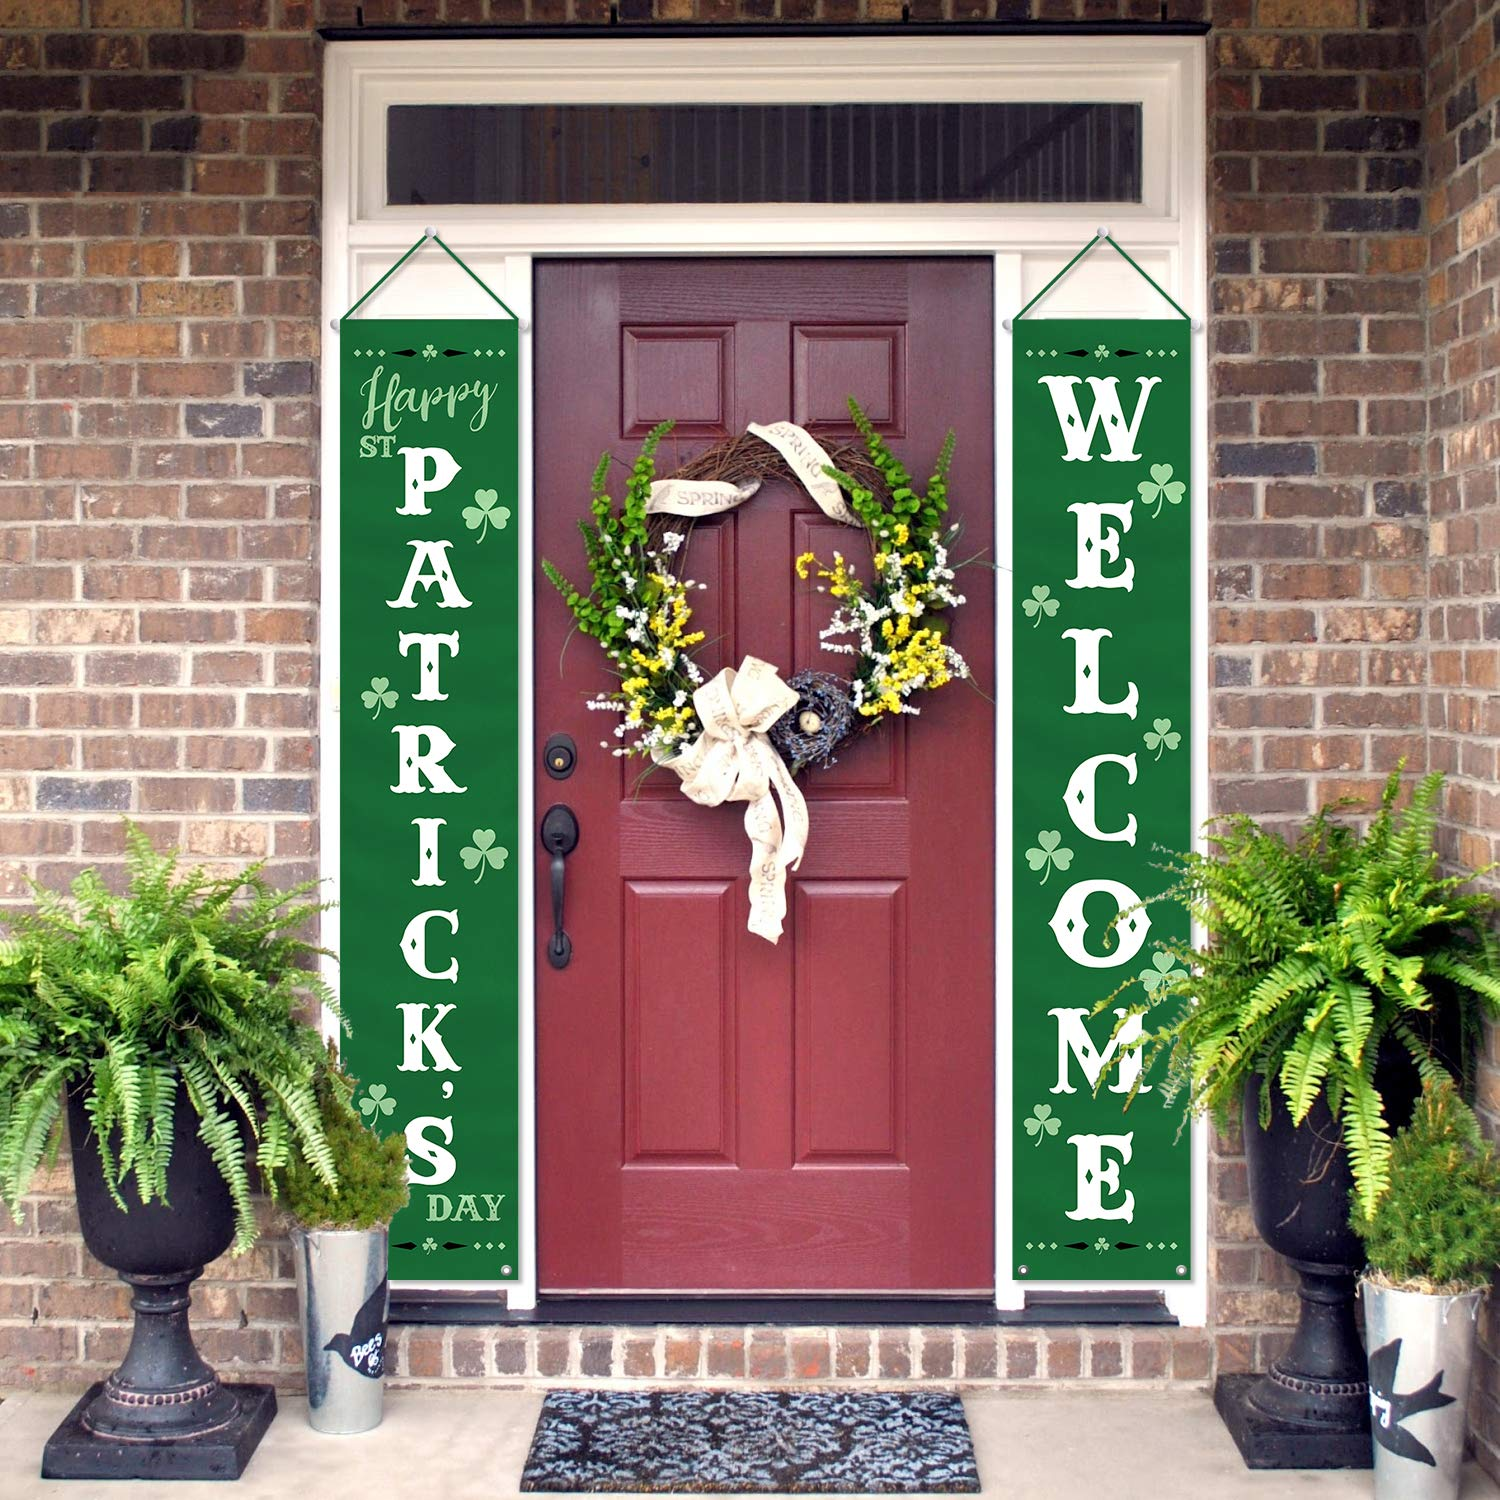 Saint Patricks Day Outdoor Irish Shamrock Décor Banners